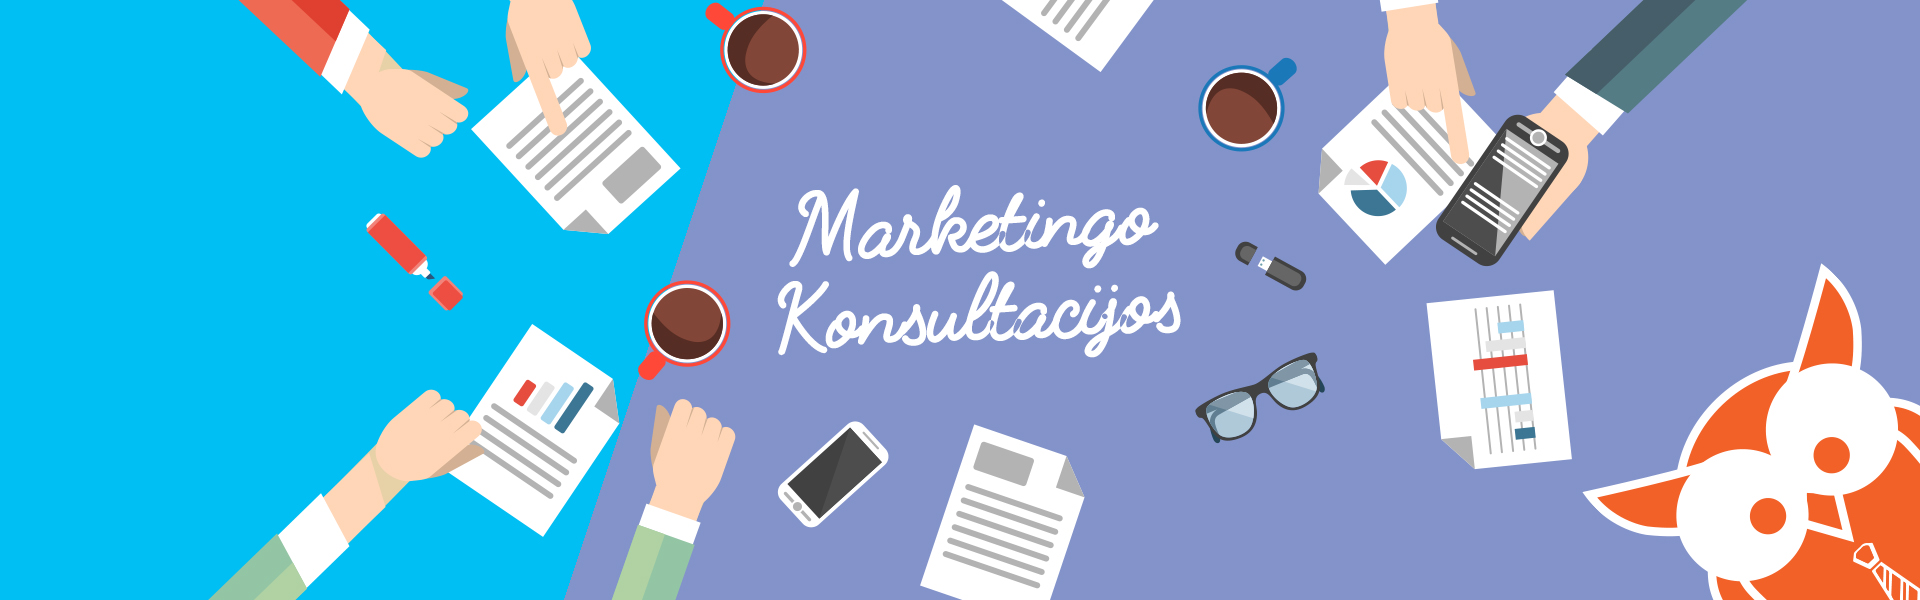 marketingo konsultacija